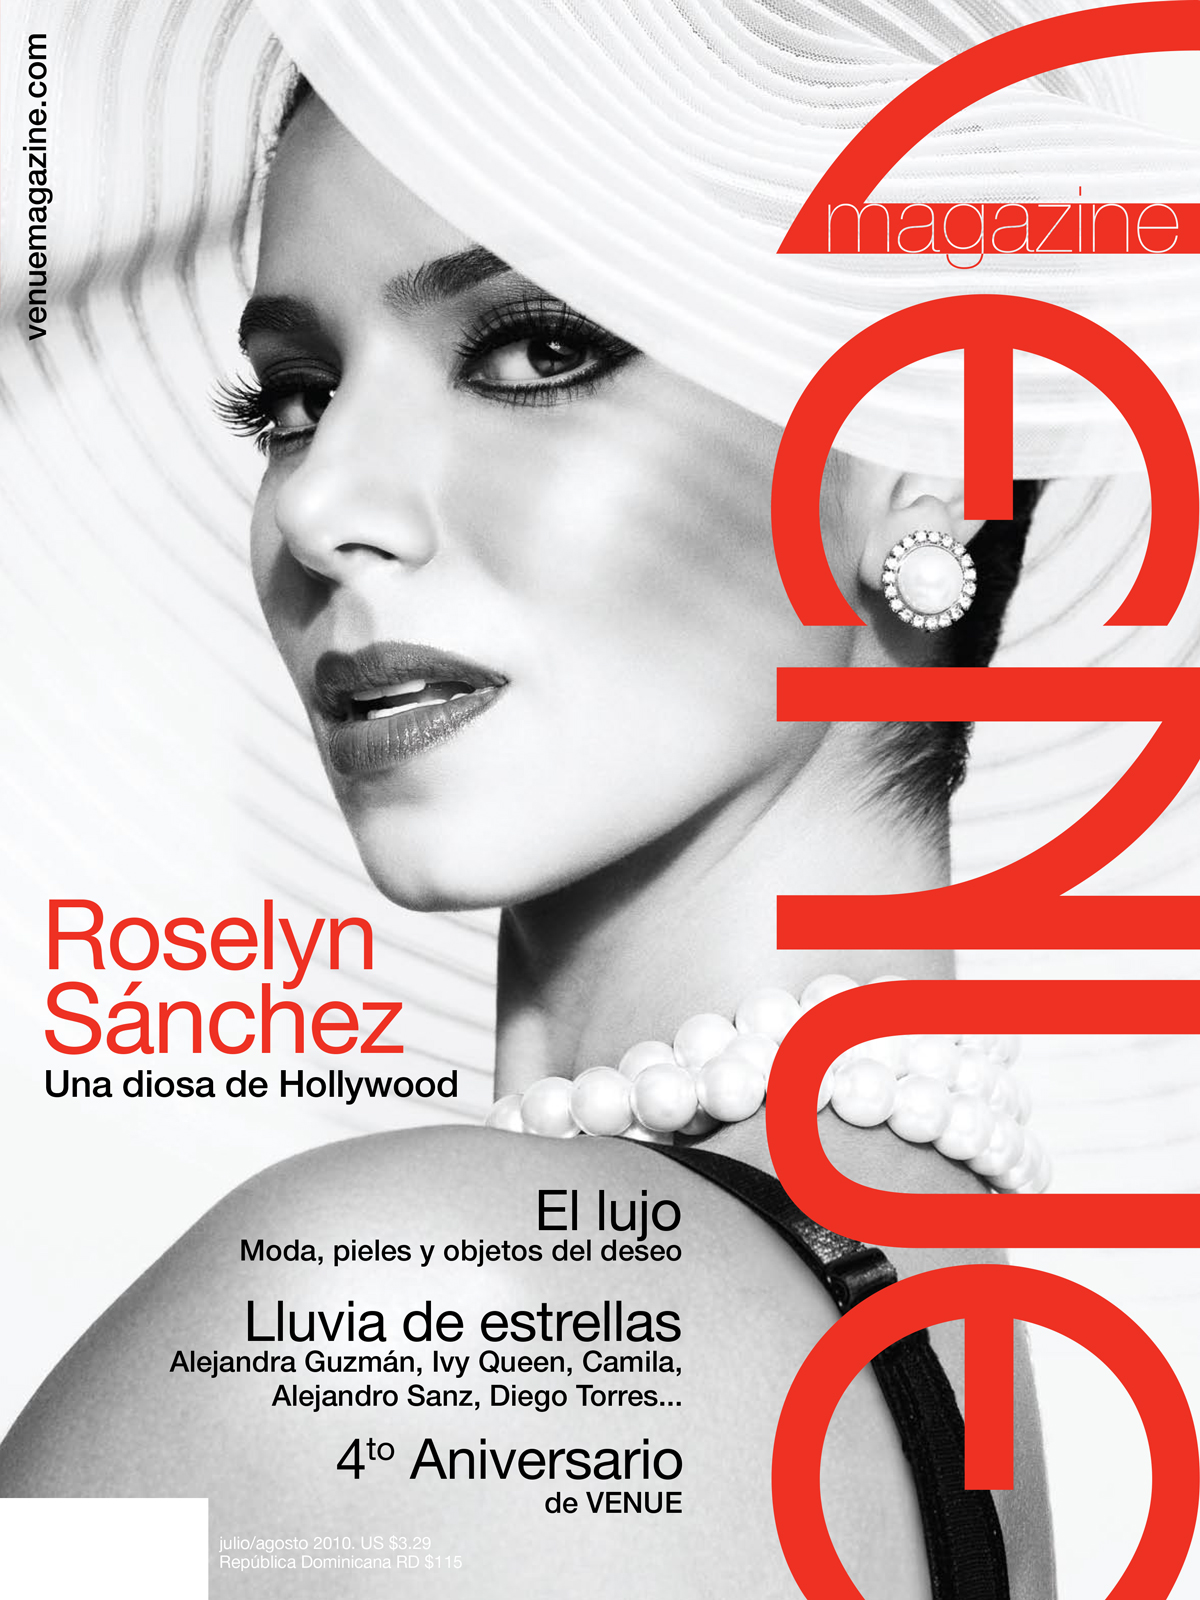 Roselyn Sanchez, Venue magazine